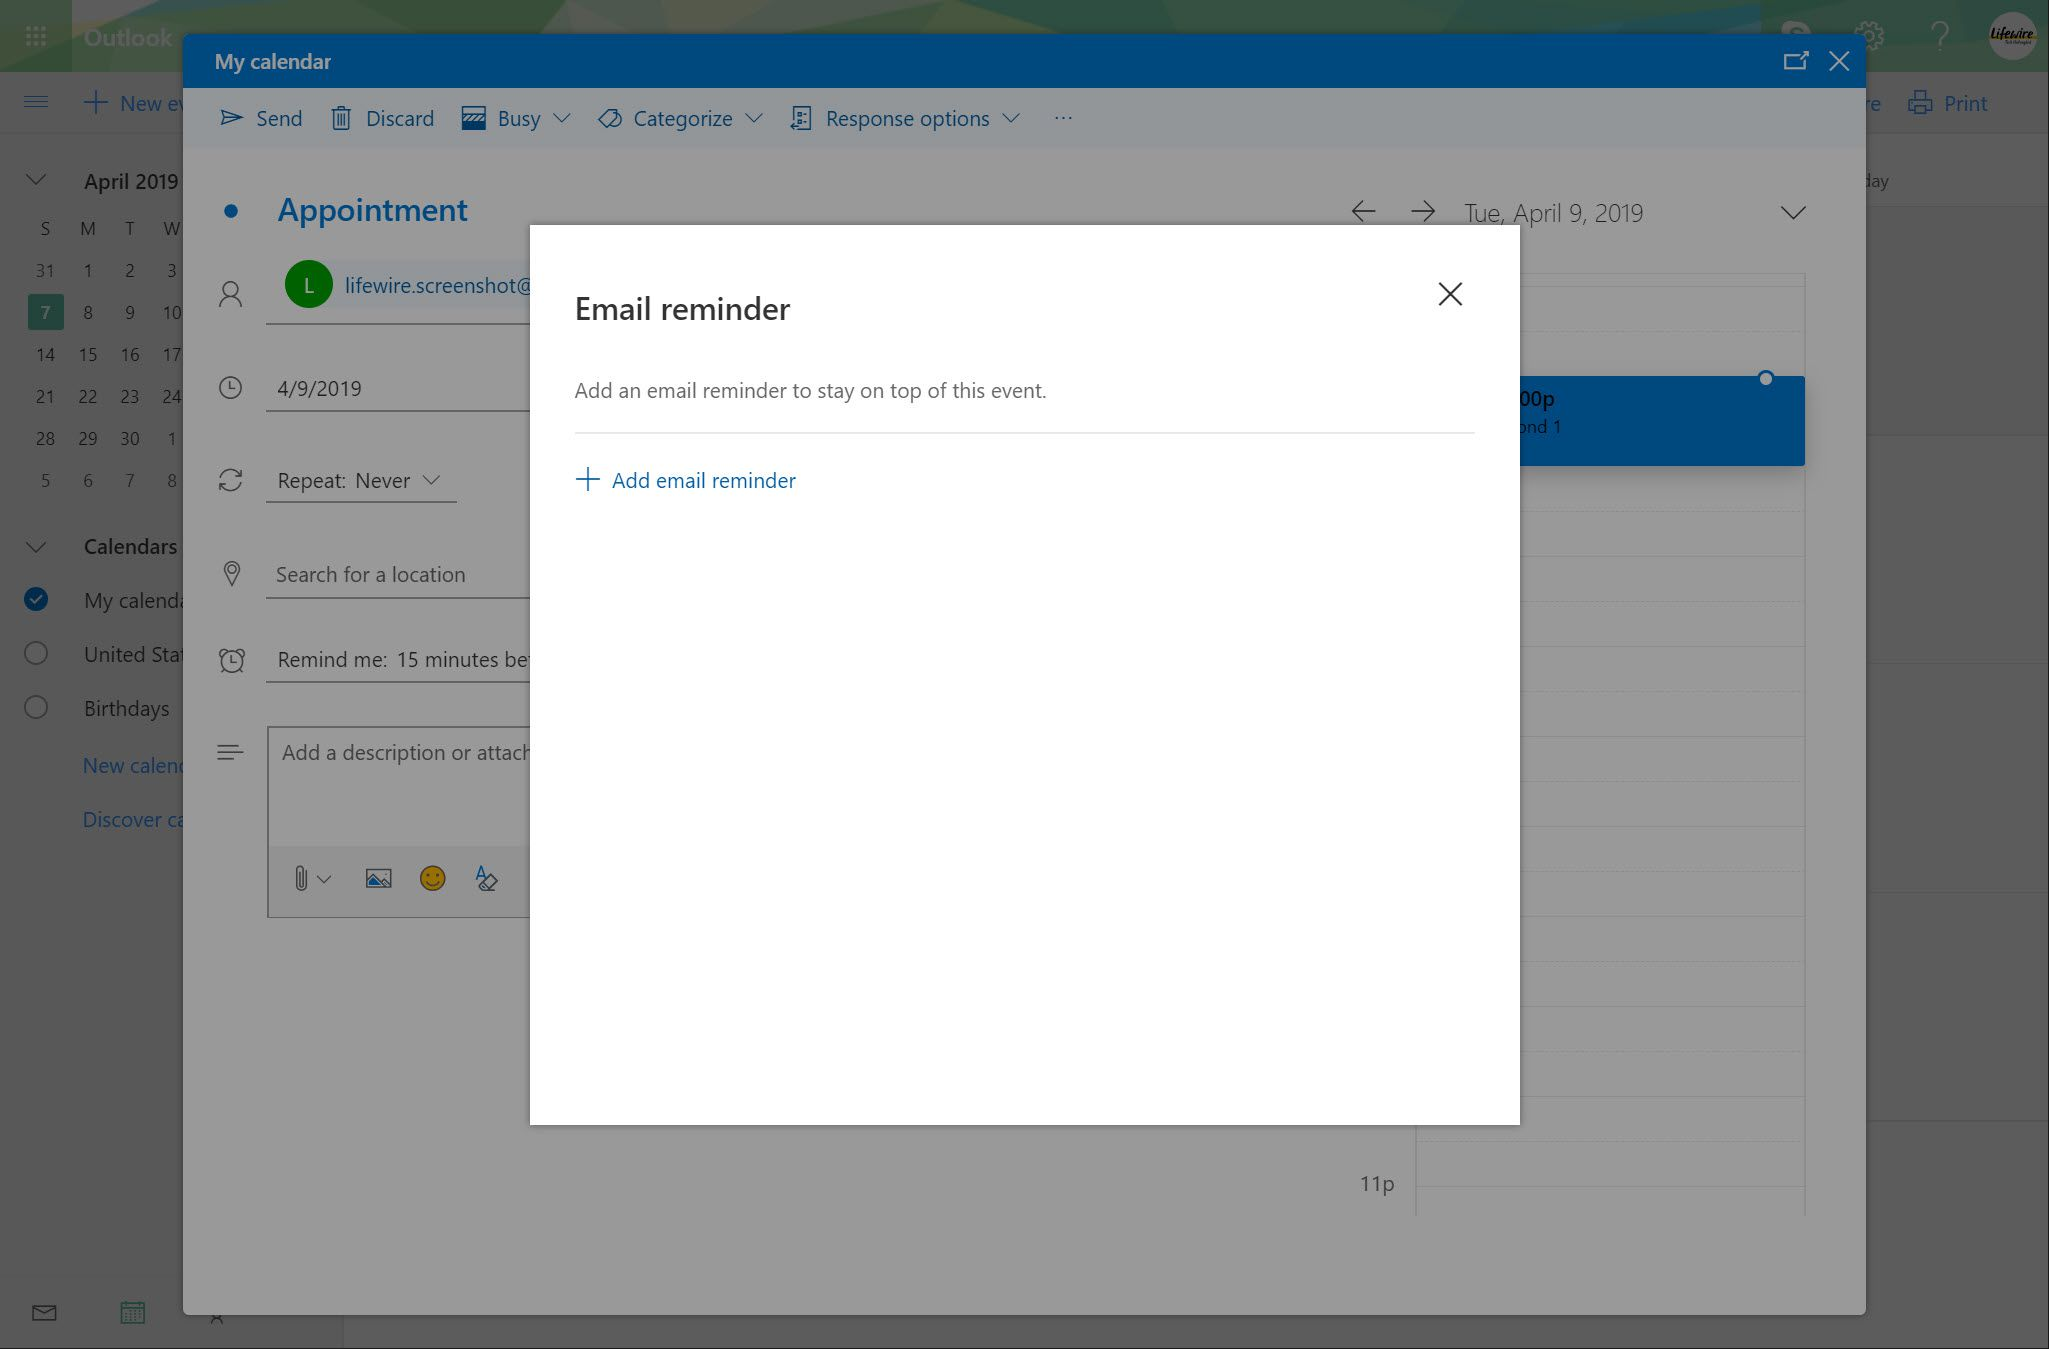 Outlook.com Email reminder window with Add email reminder option